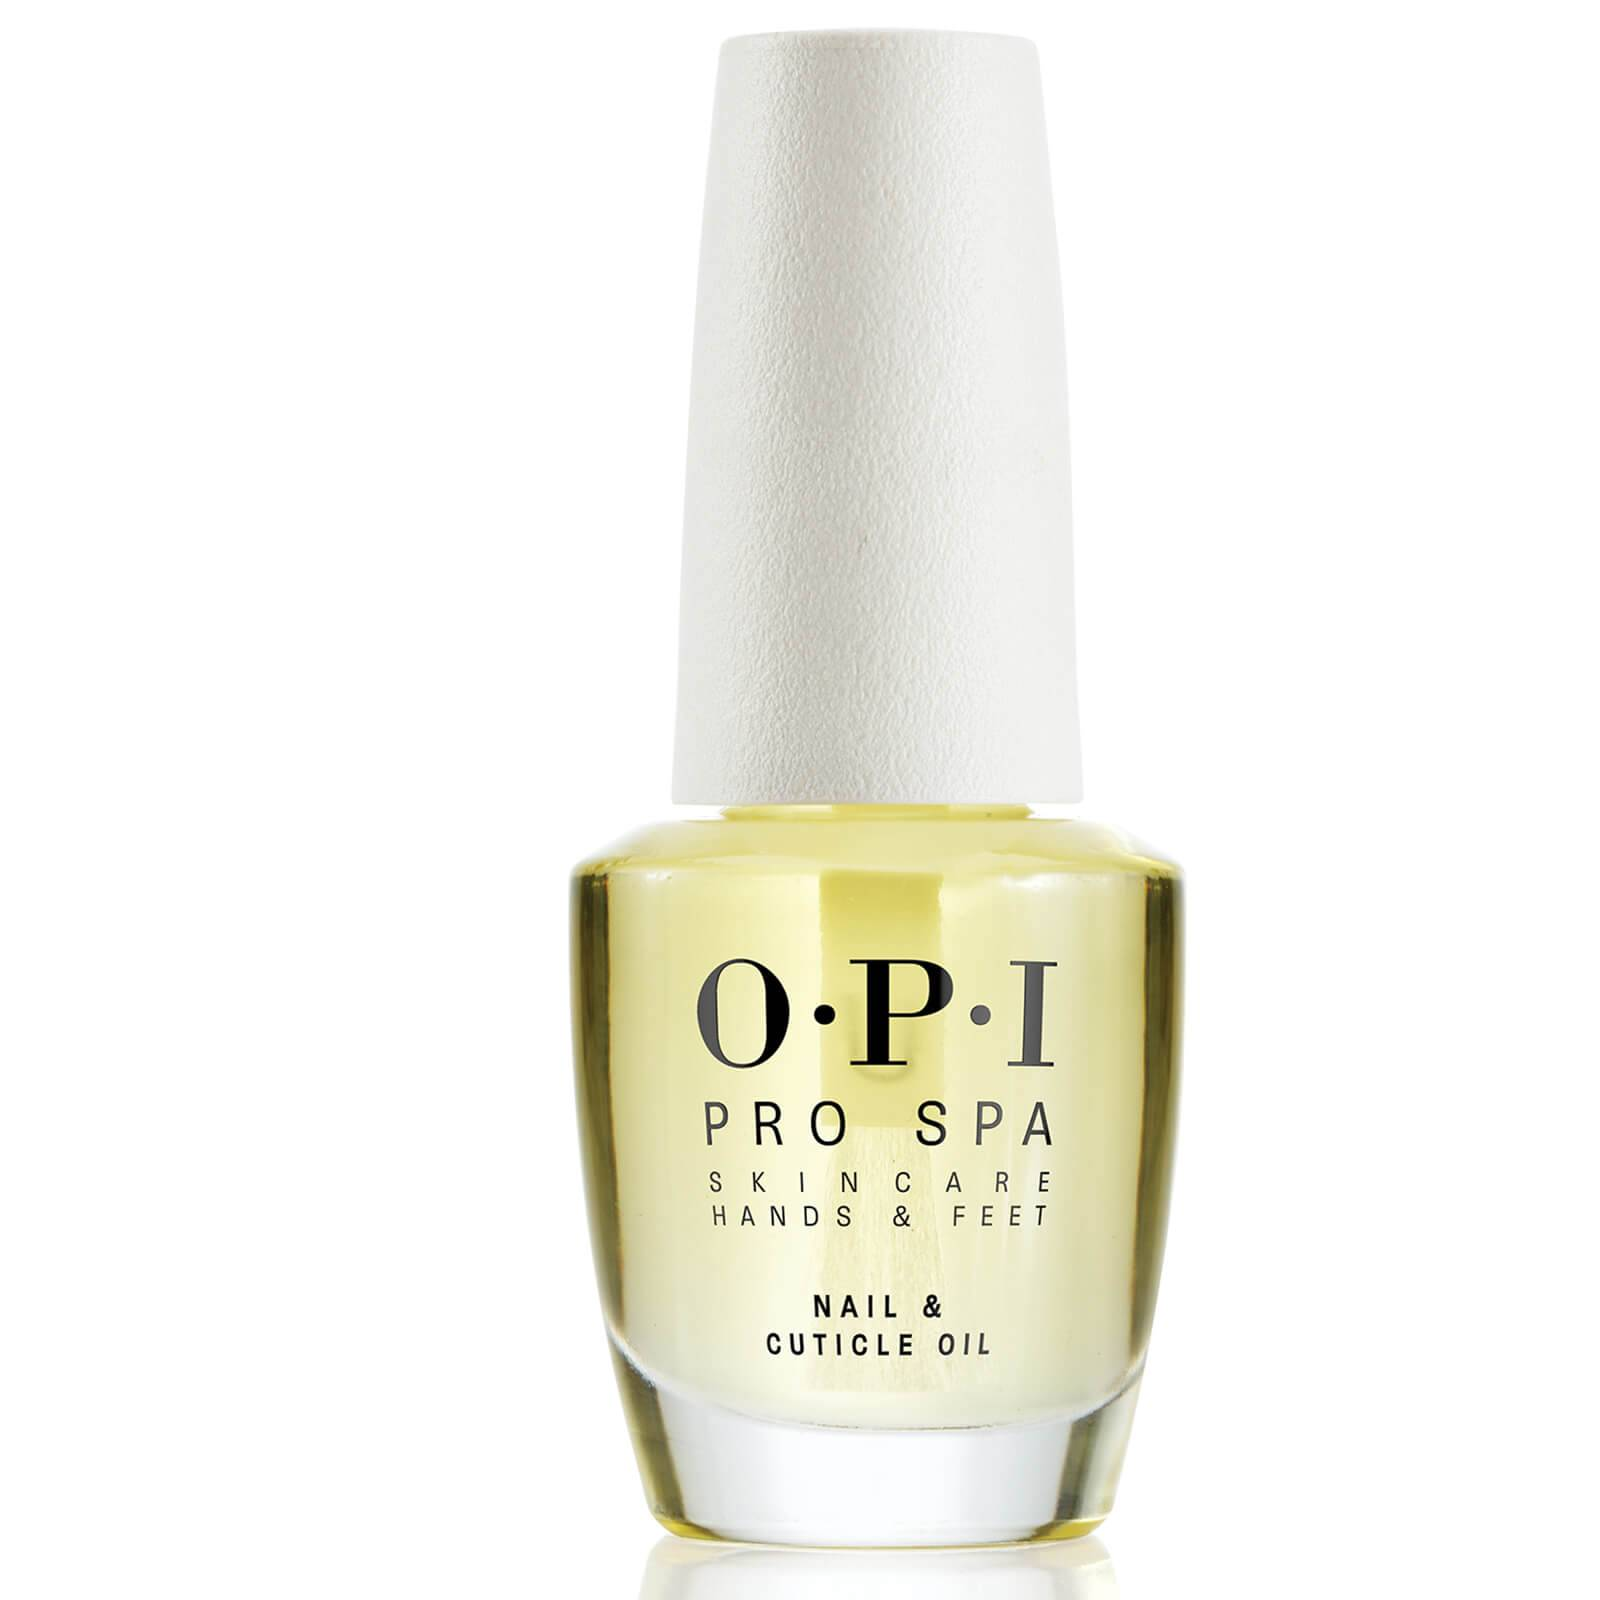 OPI Huile ongles et cuticules PRO SPA OPI (plusieurs formats disponibles) - 14.8ml